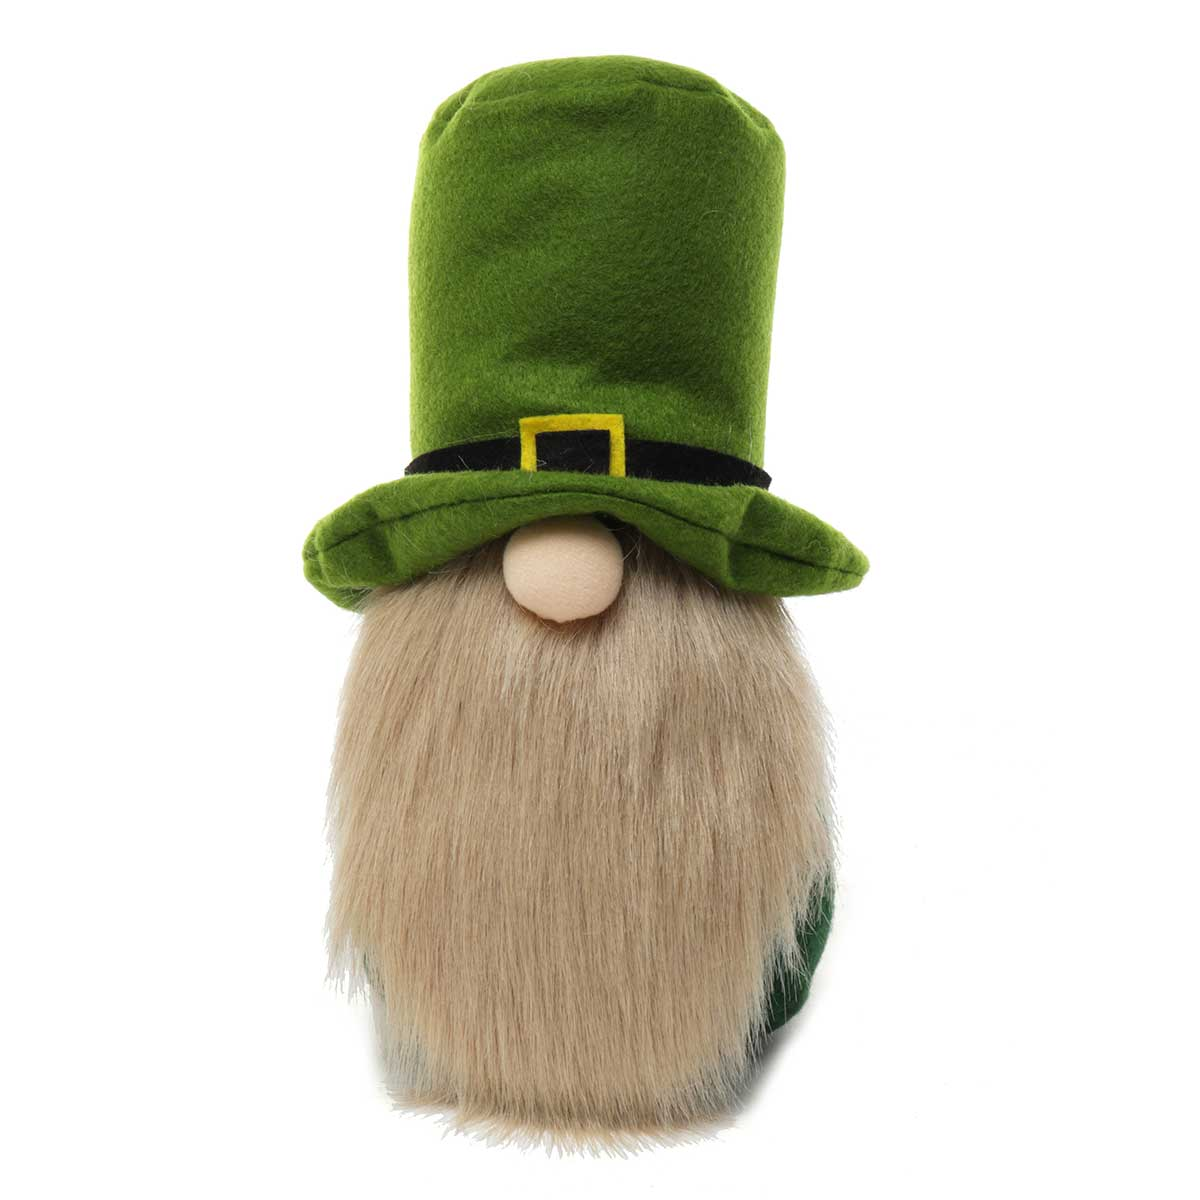 "ST PATTY GNOME 4.5""X10"" - MERAVIC EXCLUSIVE DESIGN"